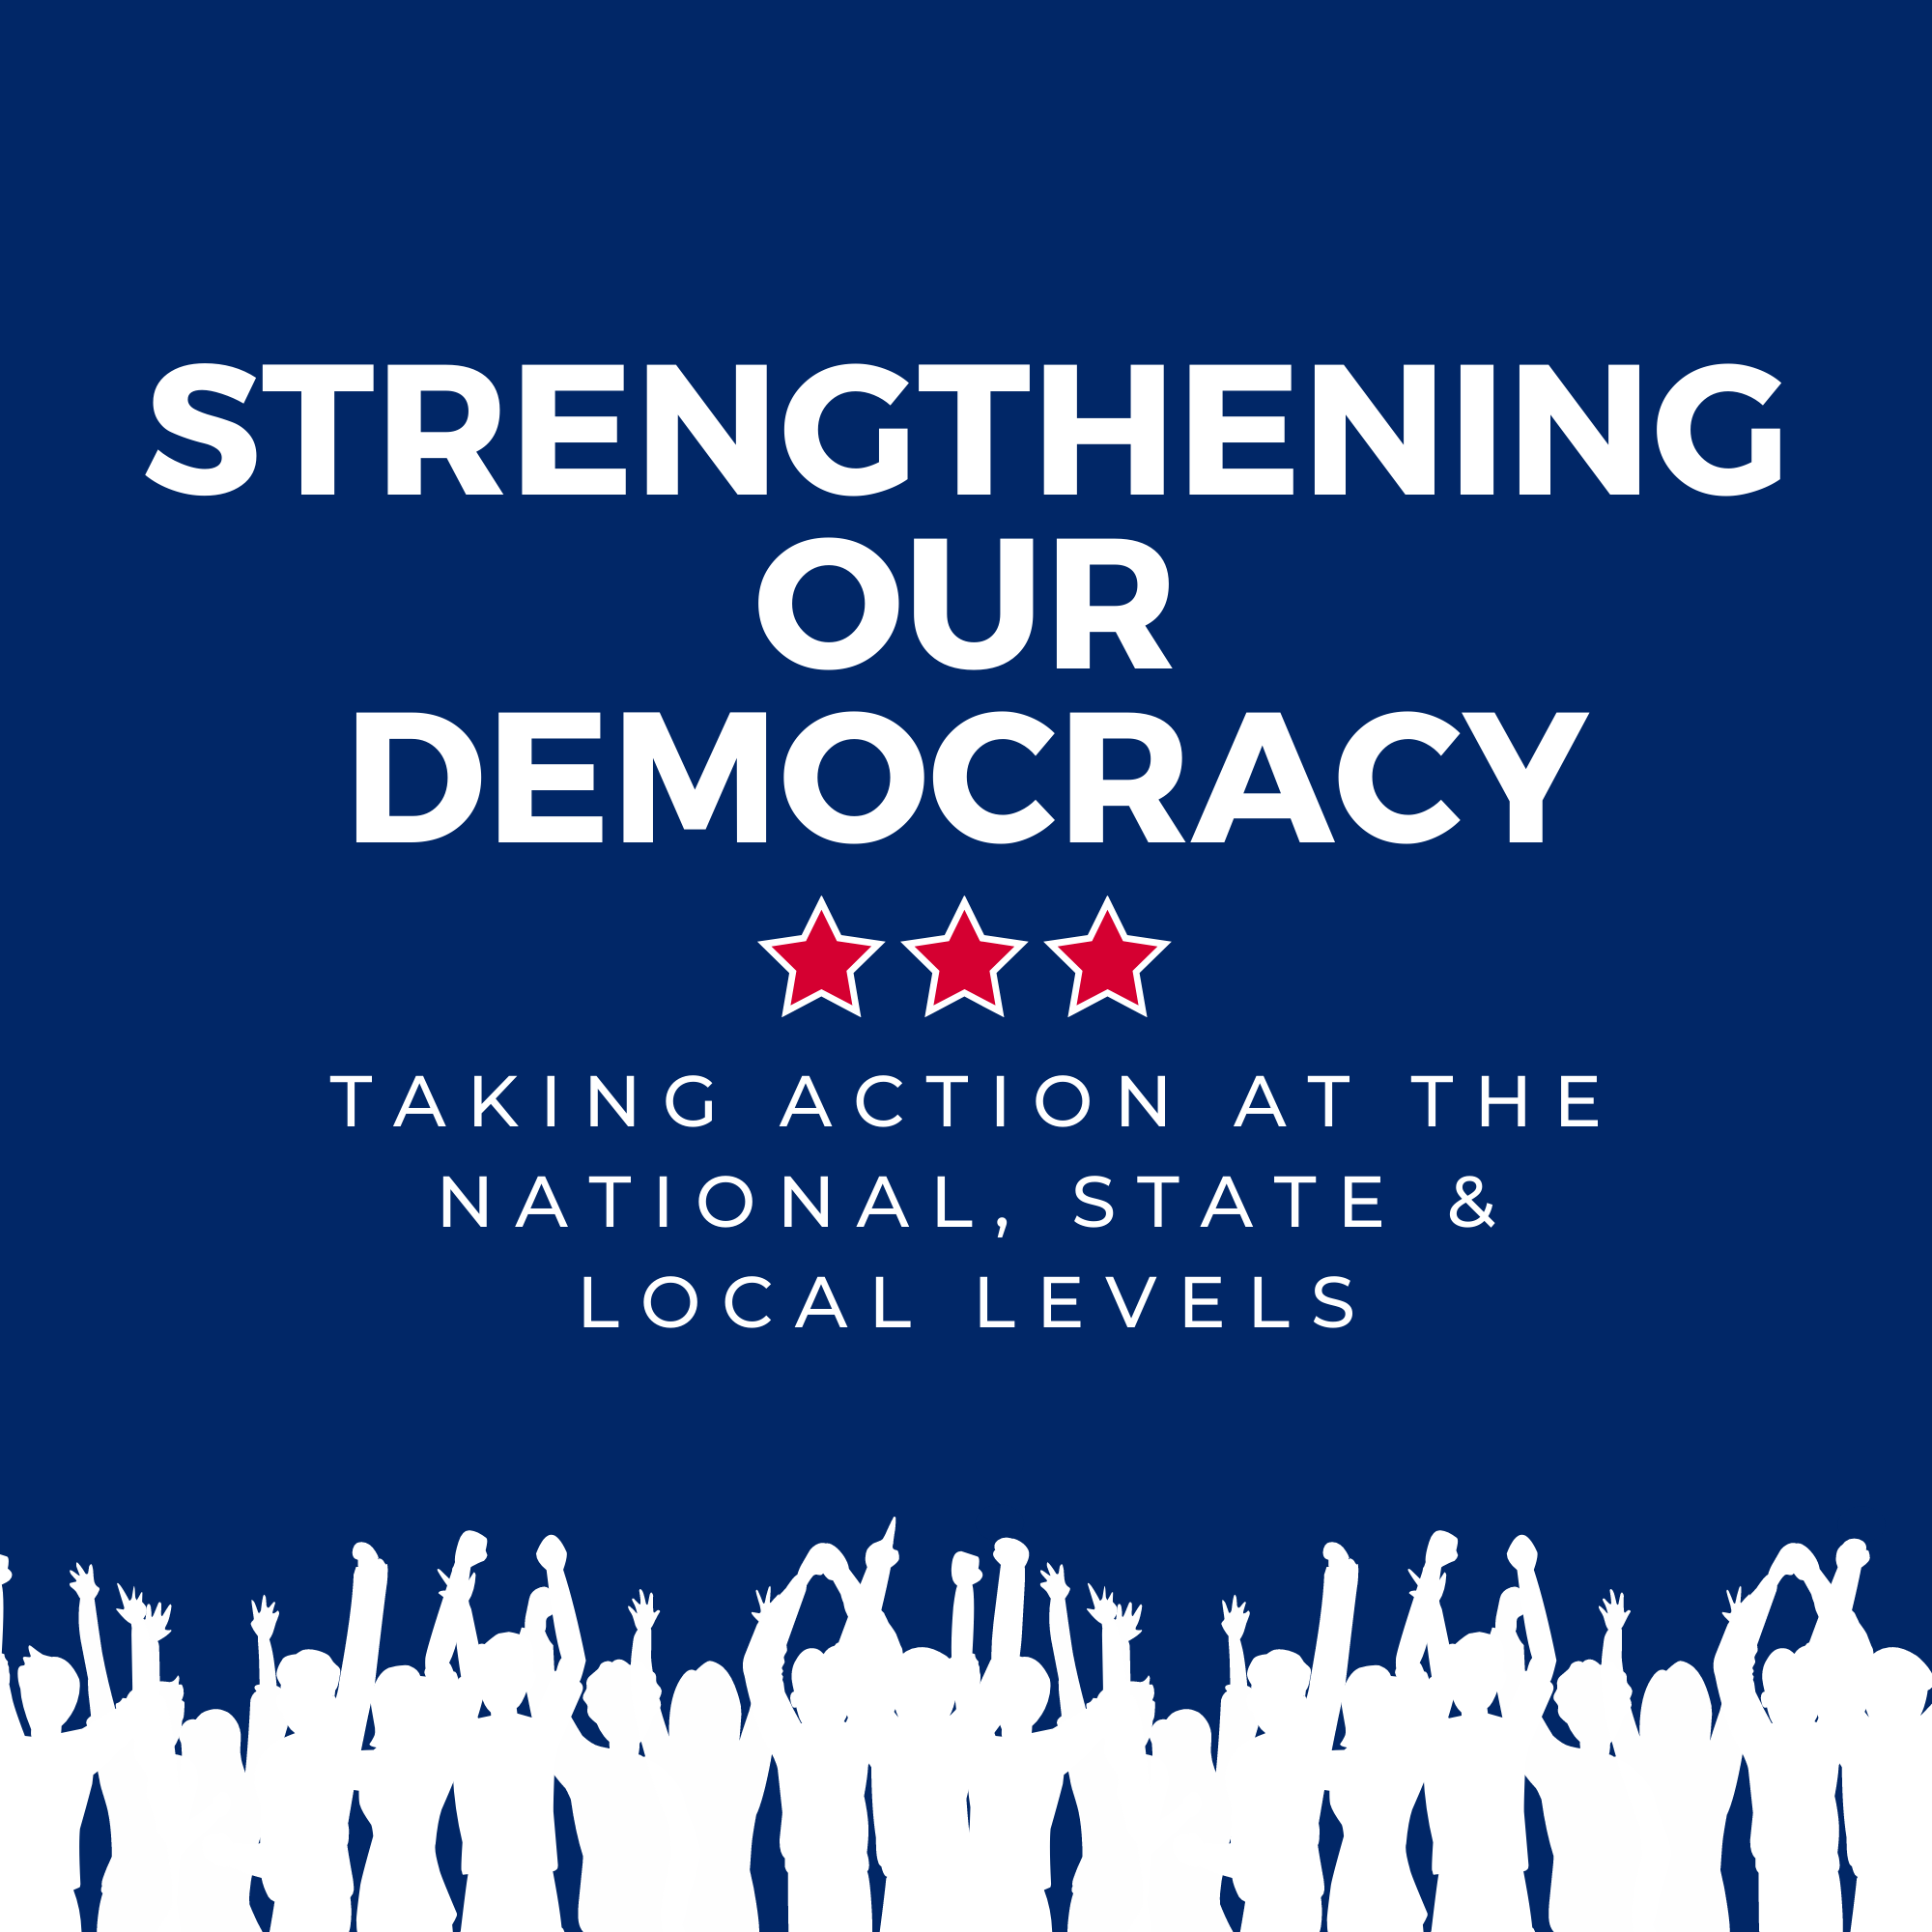 Strengthening Our Democracy